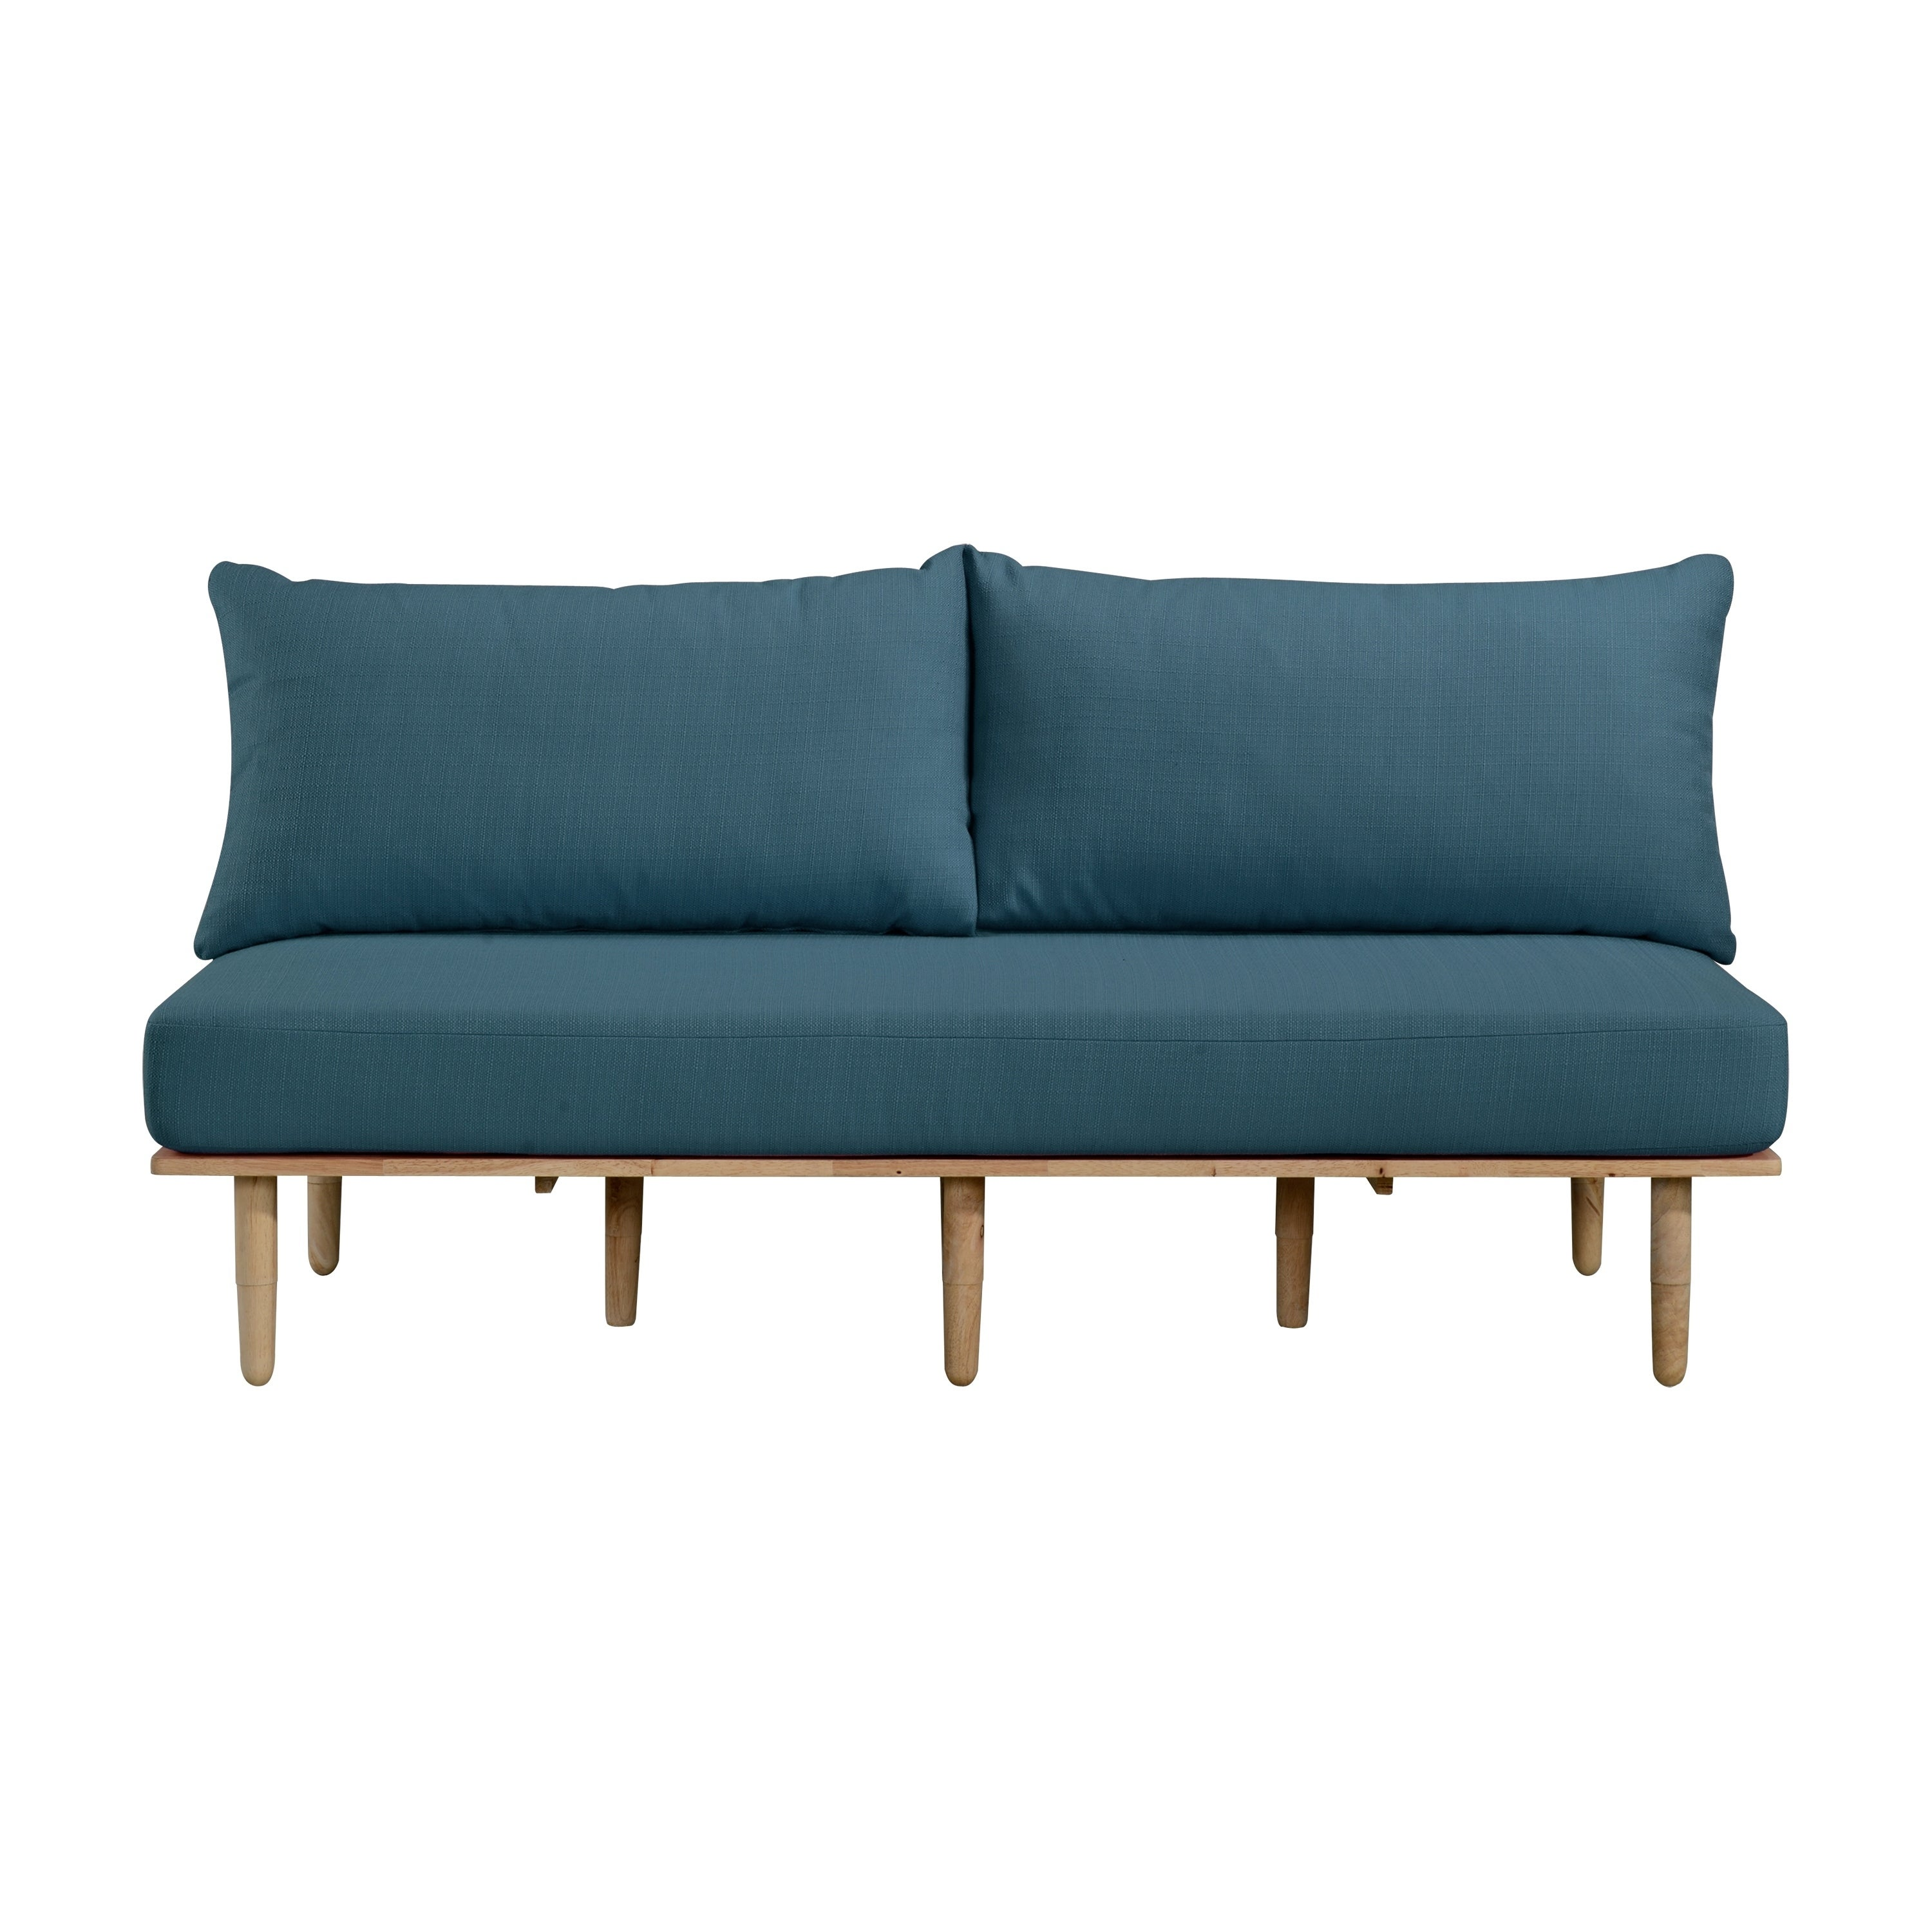 Fantastic Buy Handy Living Sofas Couches Online At Overstock Our Machost Co Dining Chair Design Ideas Machostcouk